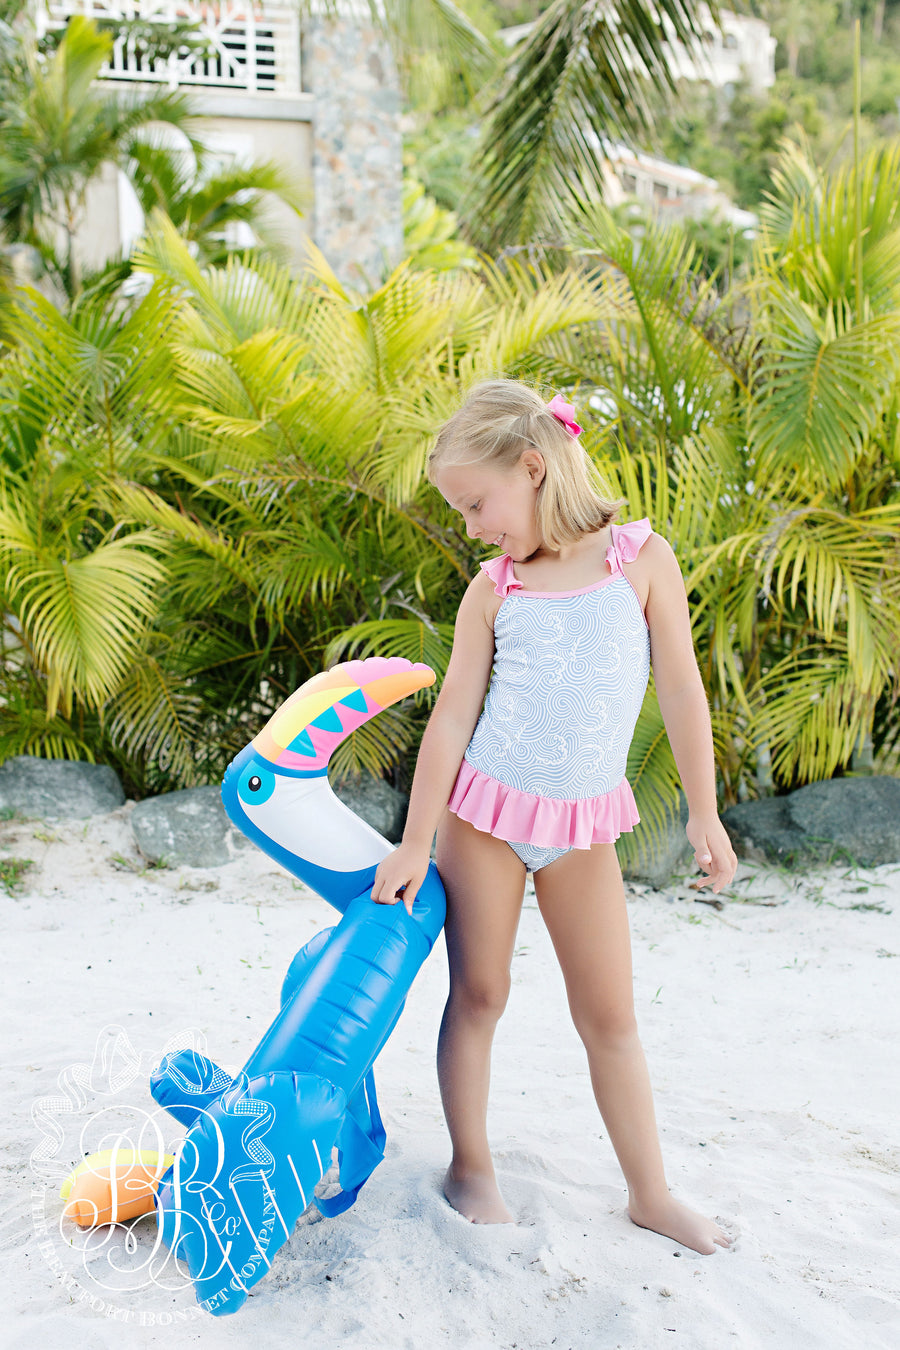 St. Lucia Swimsuit - Wilmington Waves with Hamptons Hot Pink